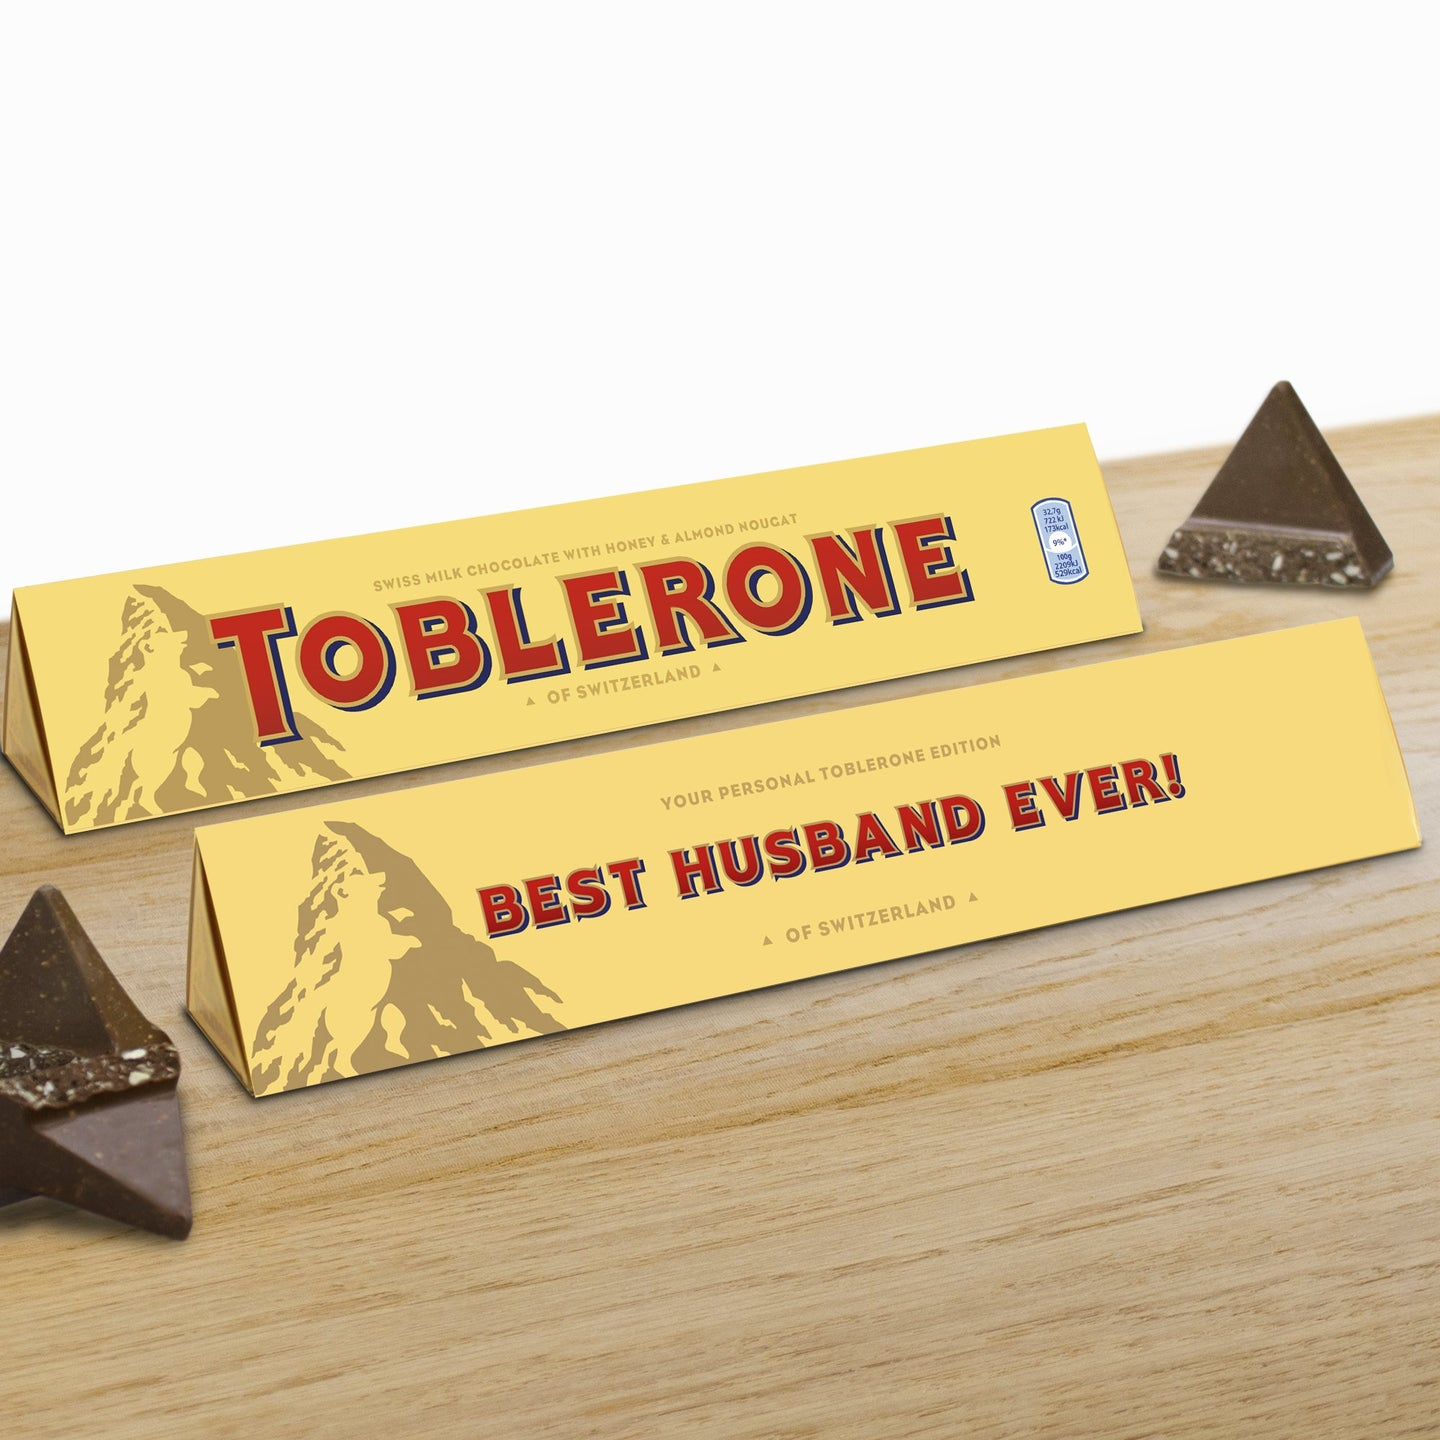 360g Milk Chocolate Toblerone with 'Best Husband Ever' Sleeve